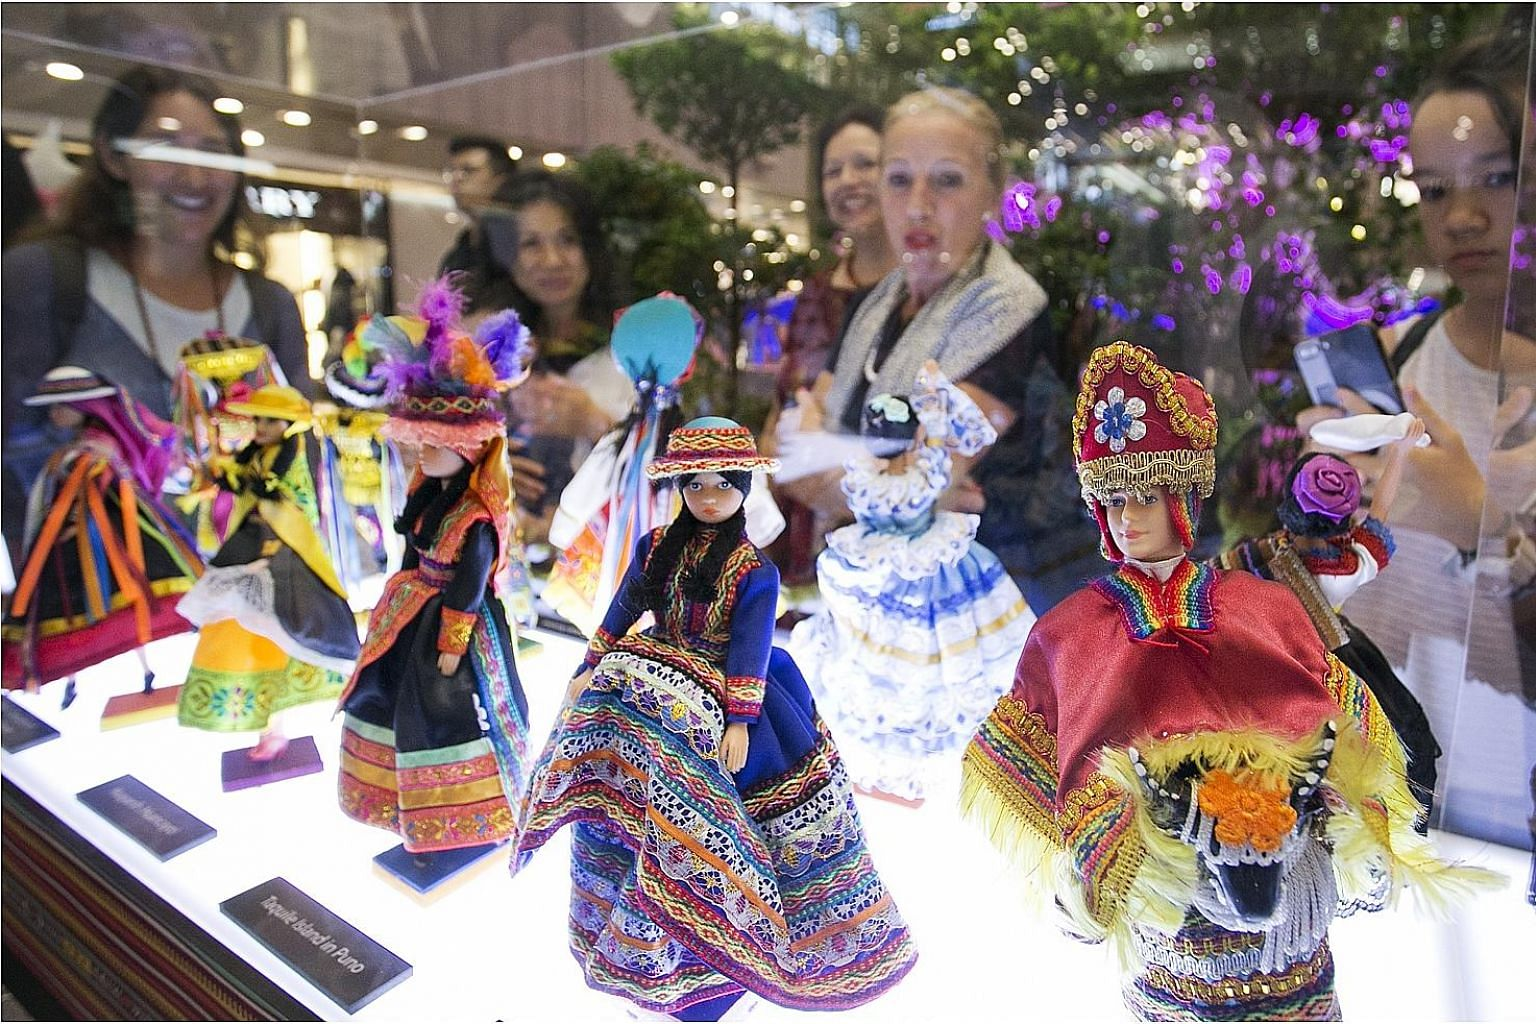 The crafts, colour and culture of 10 Latin American countries are on display in Paragon shopping centre as part of the mall's partnership with the Latin American Chamber of Commerce, Singapore. Enjoy song and dance performances, an exhibition of the